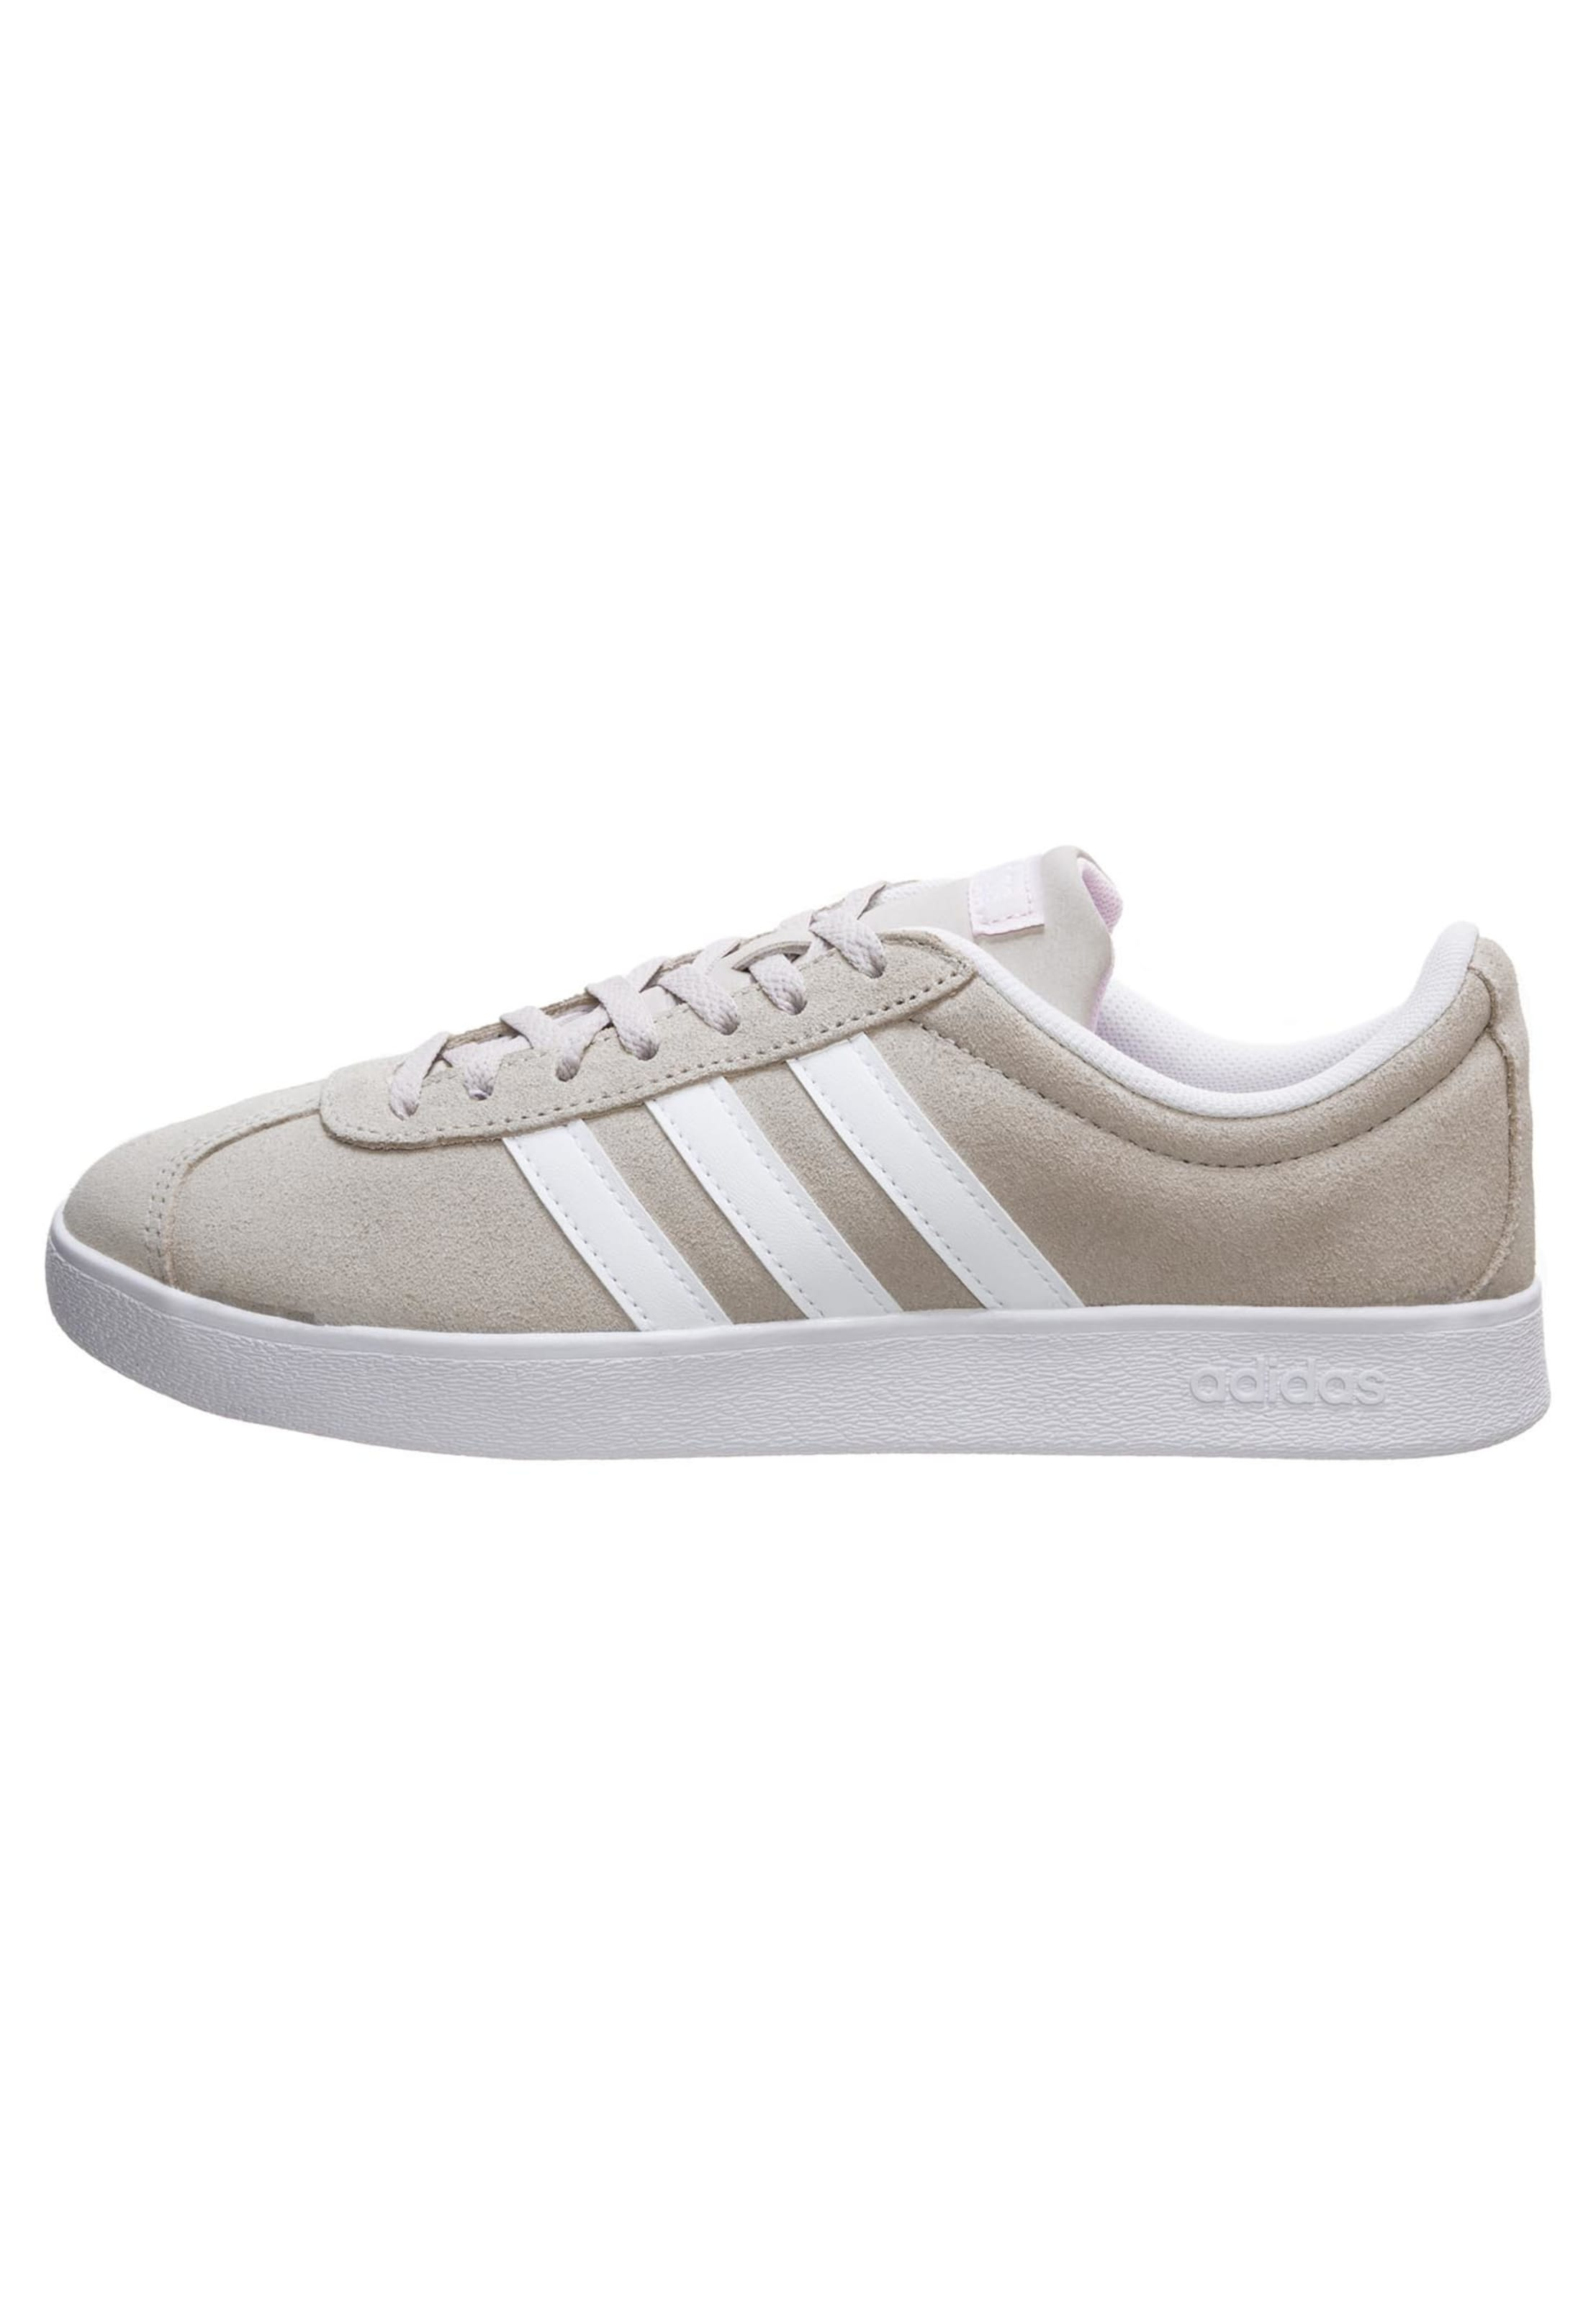 Adidas Sneaker 'vl Court Originals 2 0' In Beige yvO8PN0wmn